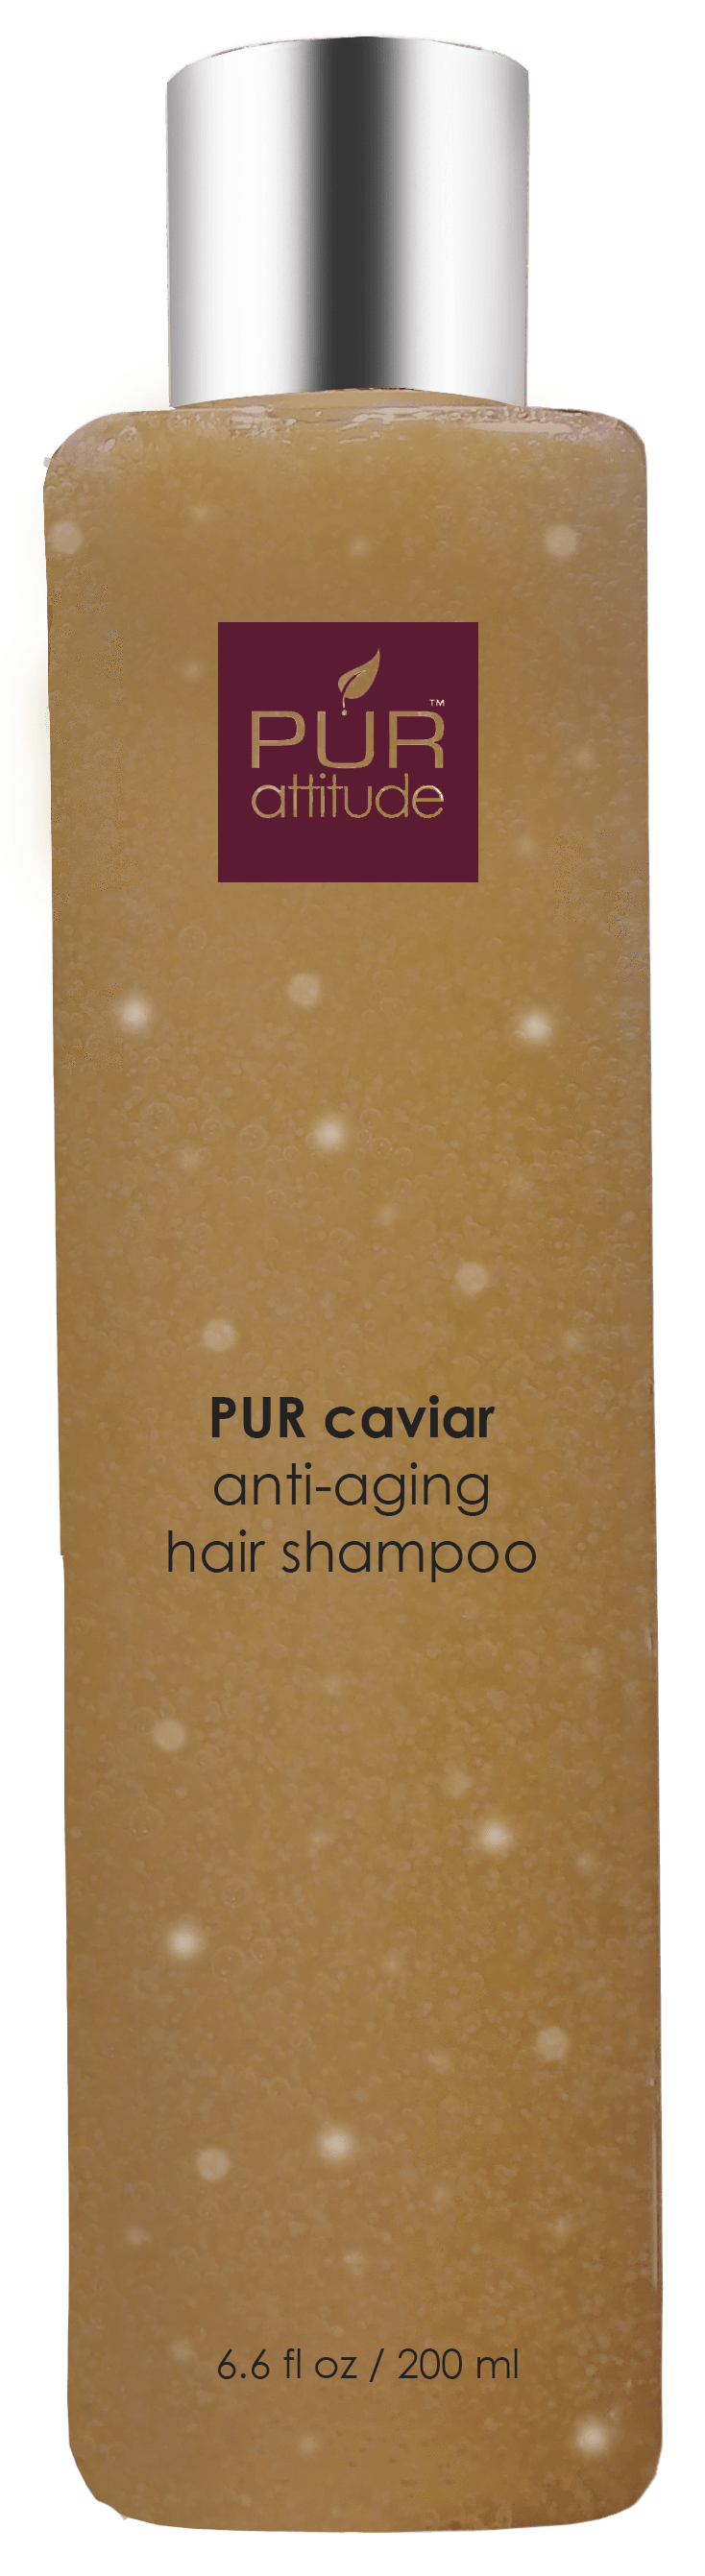 PUR Caviar AntiAging Hair Shampoo Anti aging hair